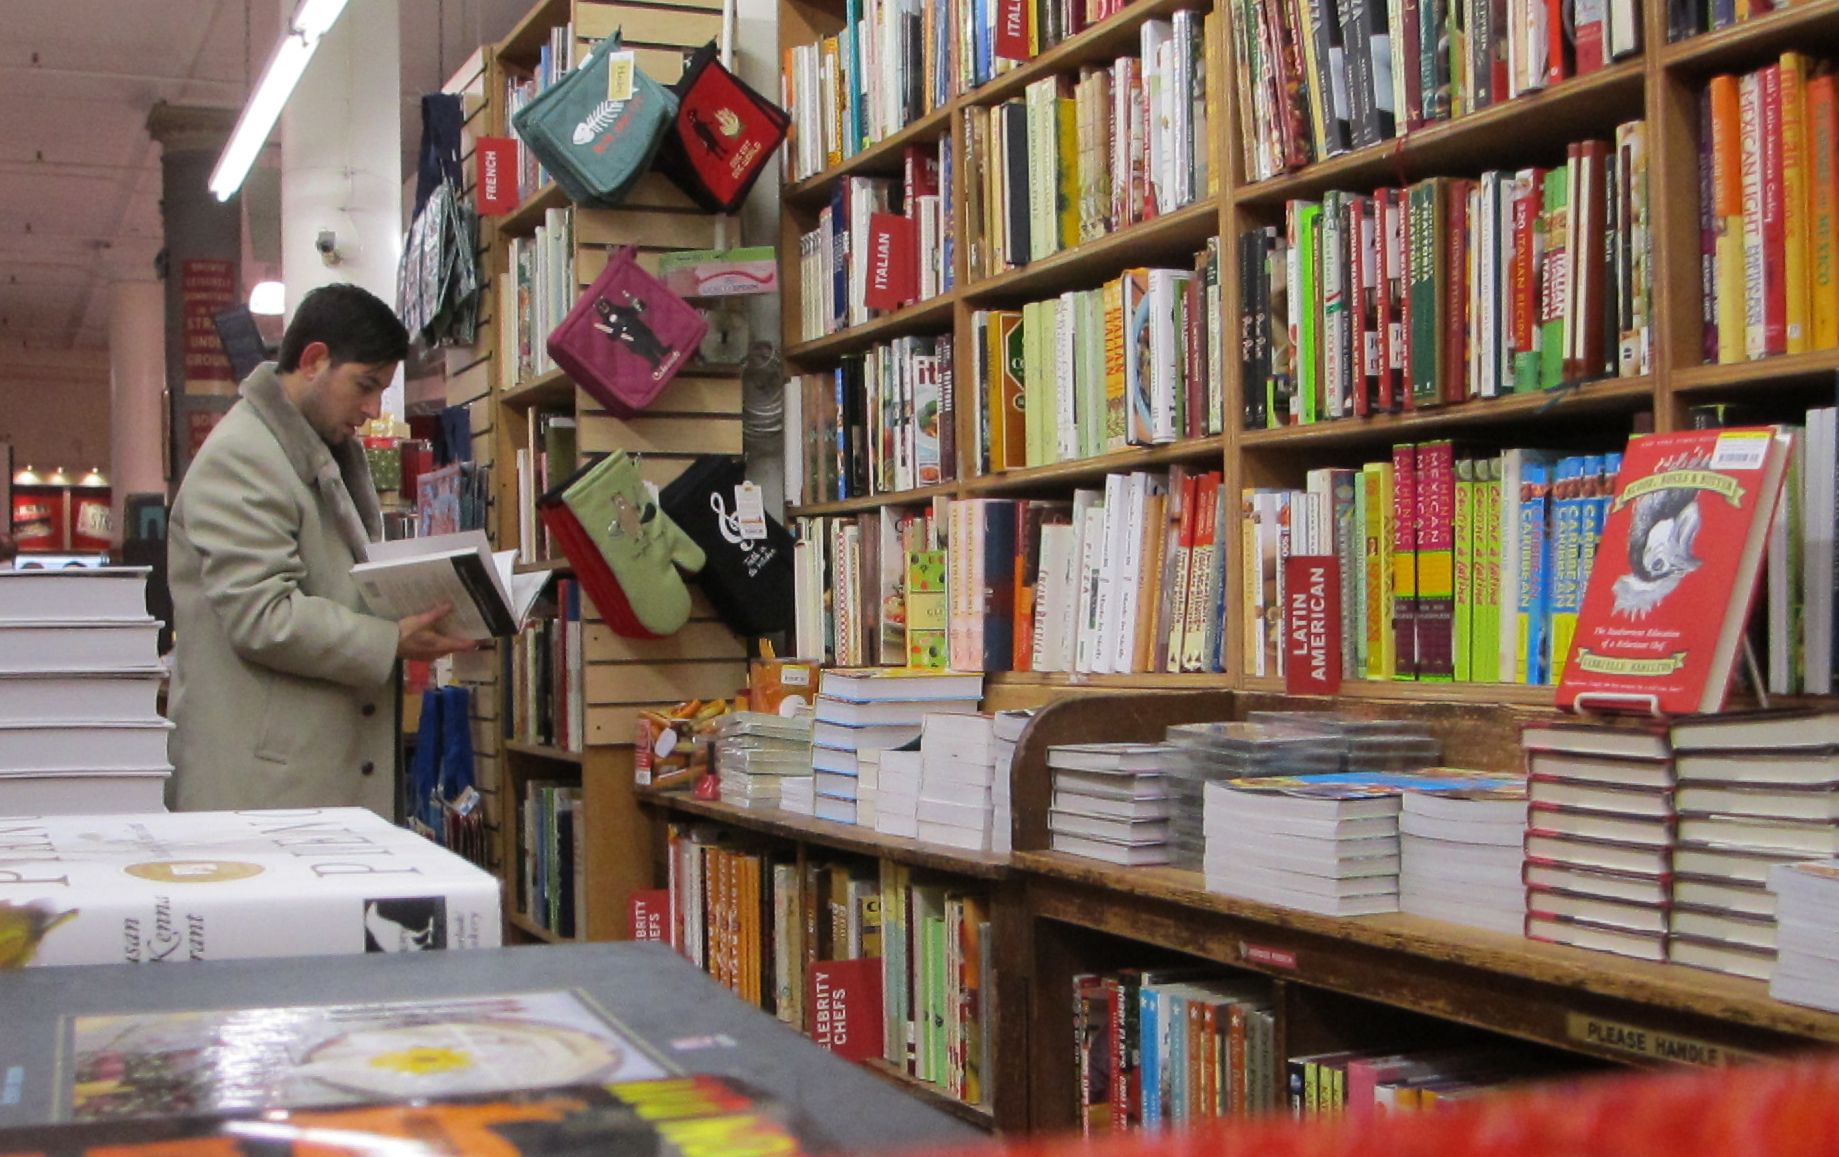 The Strand: 18 Miles of New and Used Books Ready for Discovery